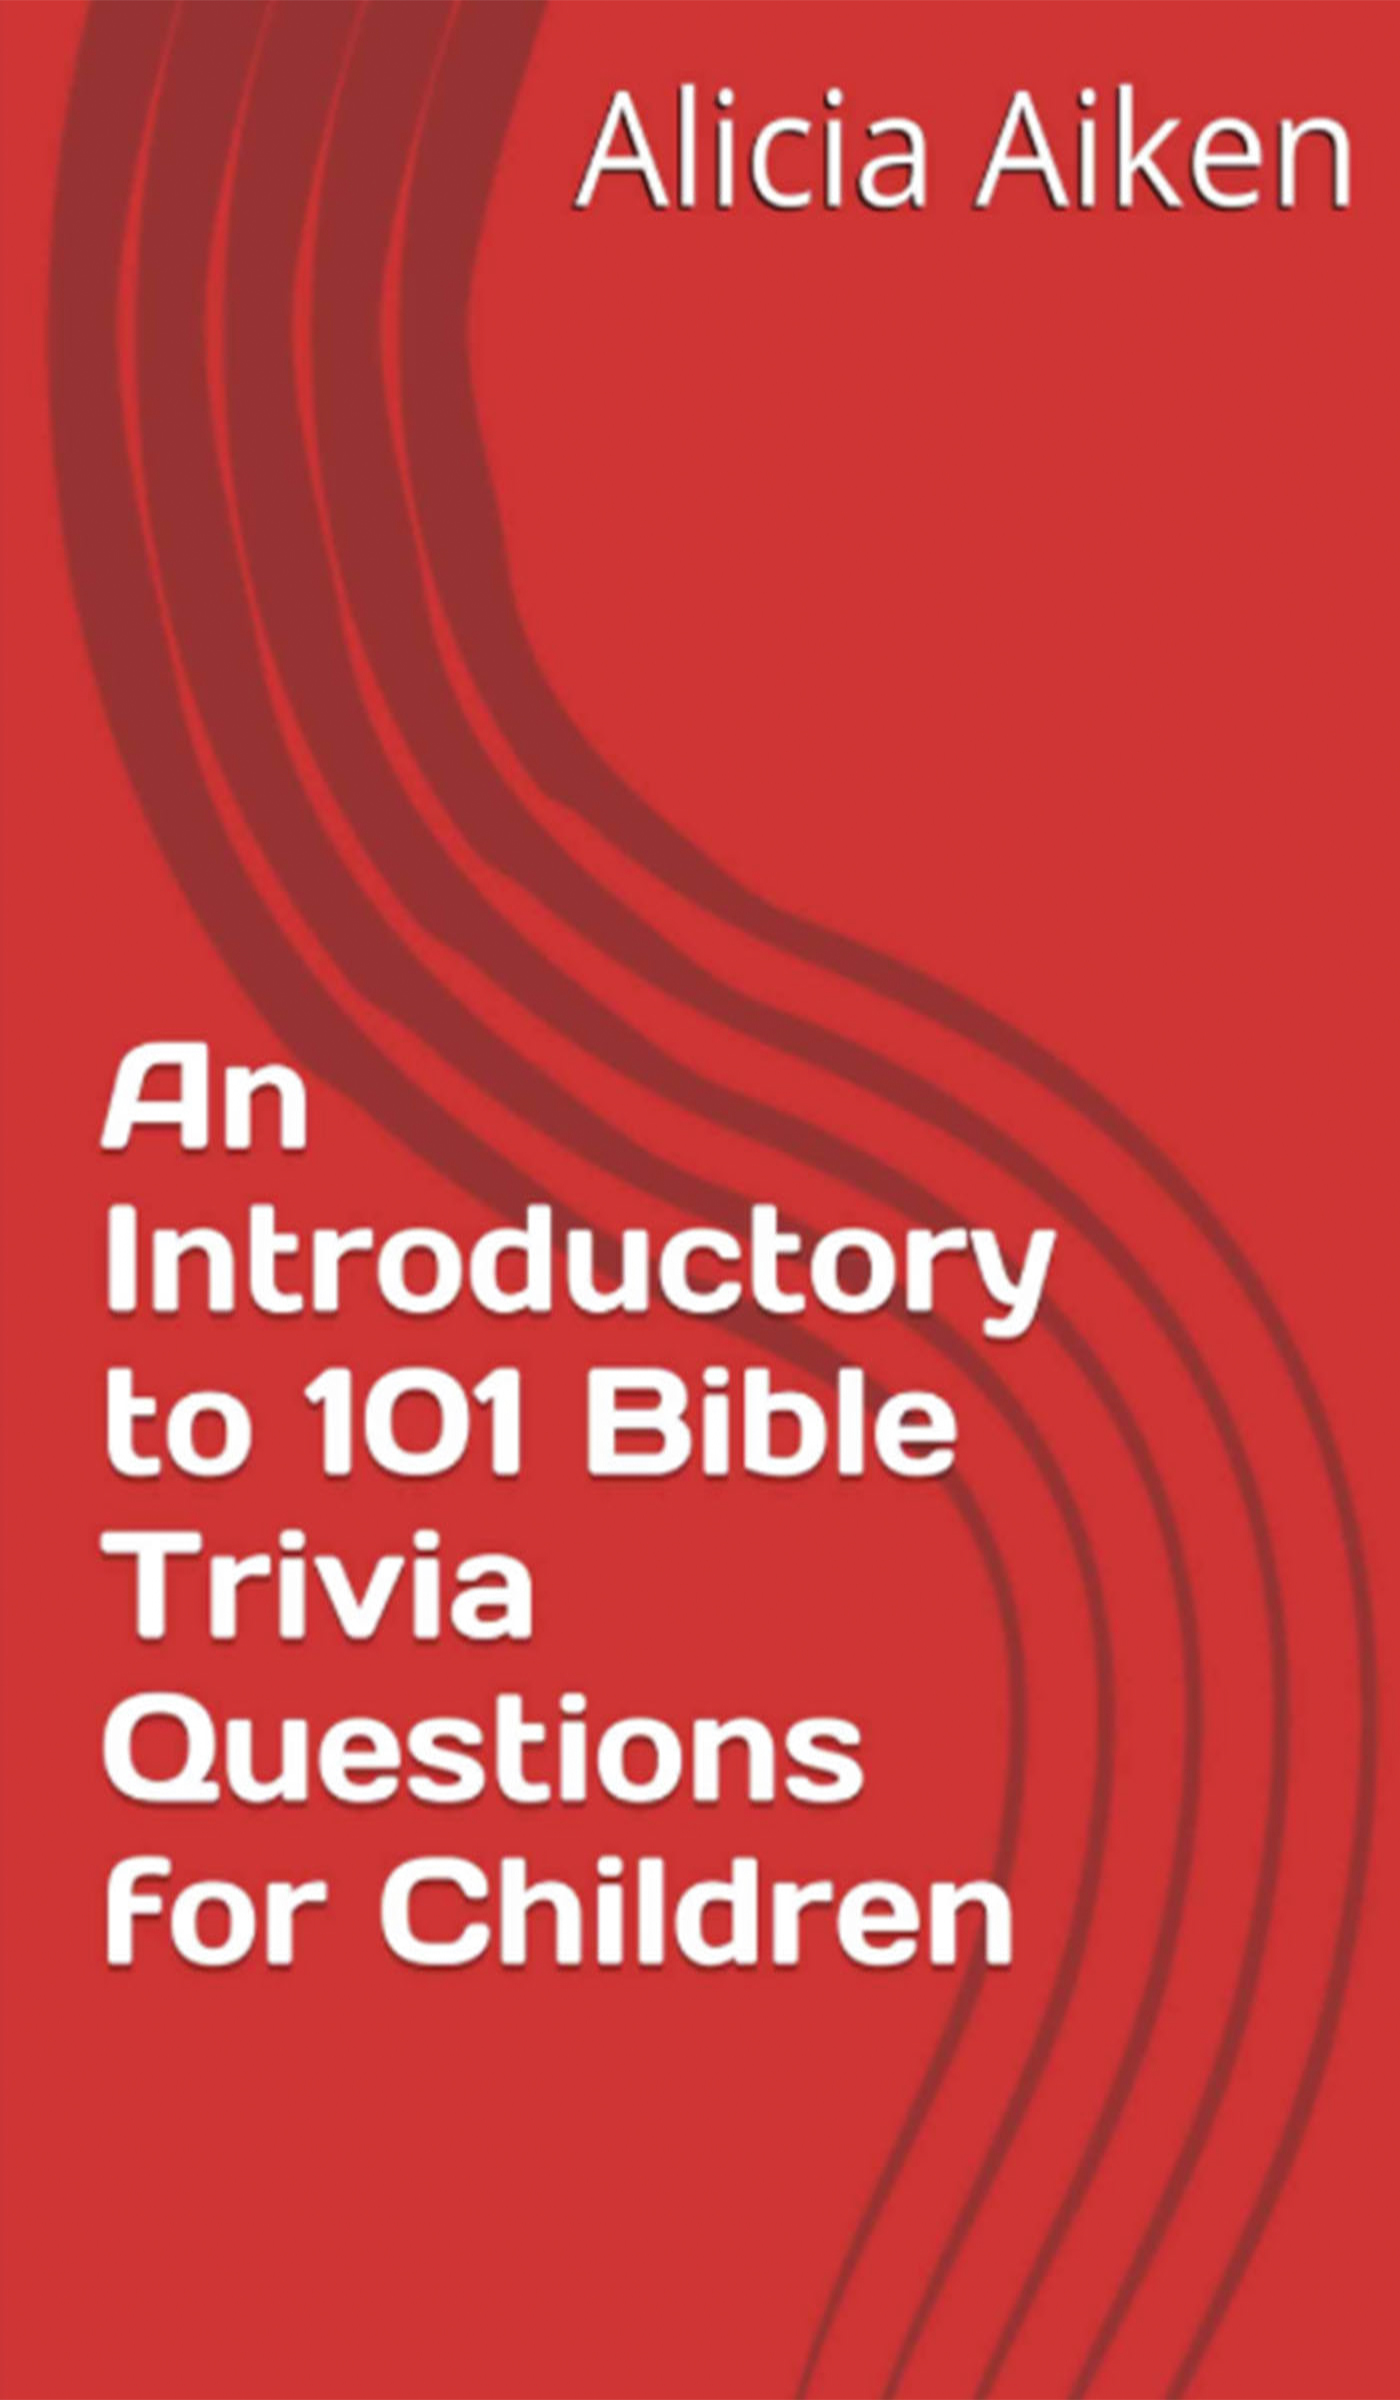 An Introductory to 101 Bible Trivia Questions for Children (Multiple Choice  Version)